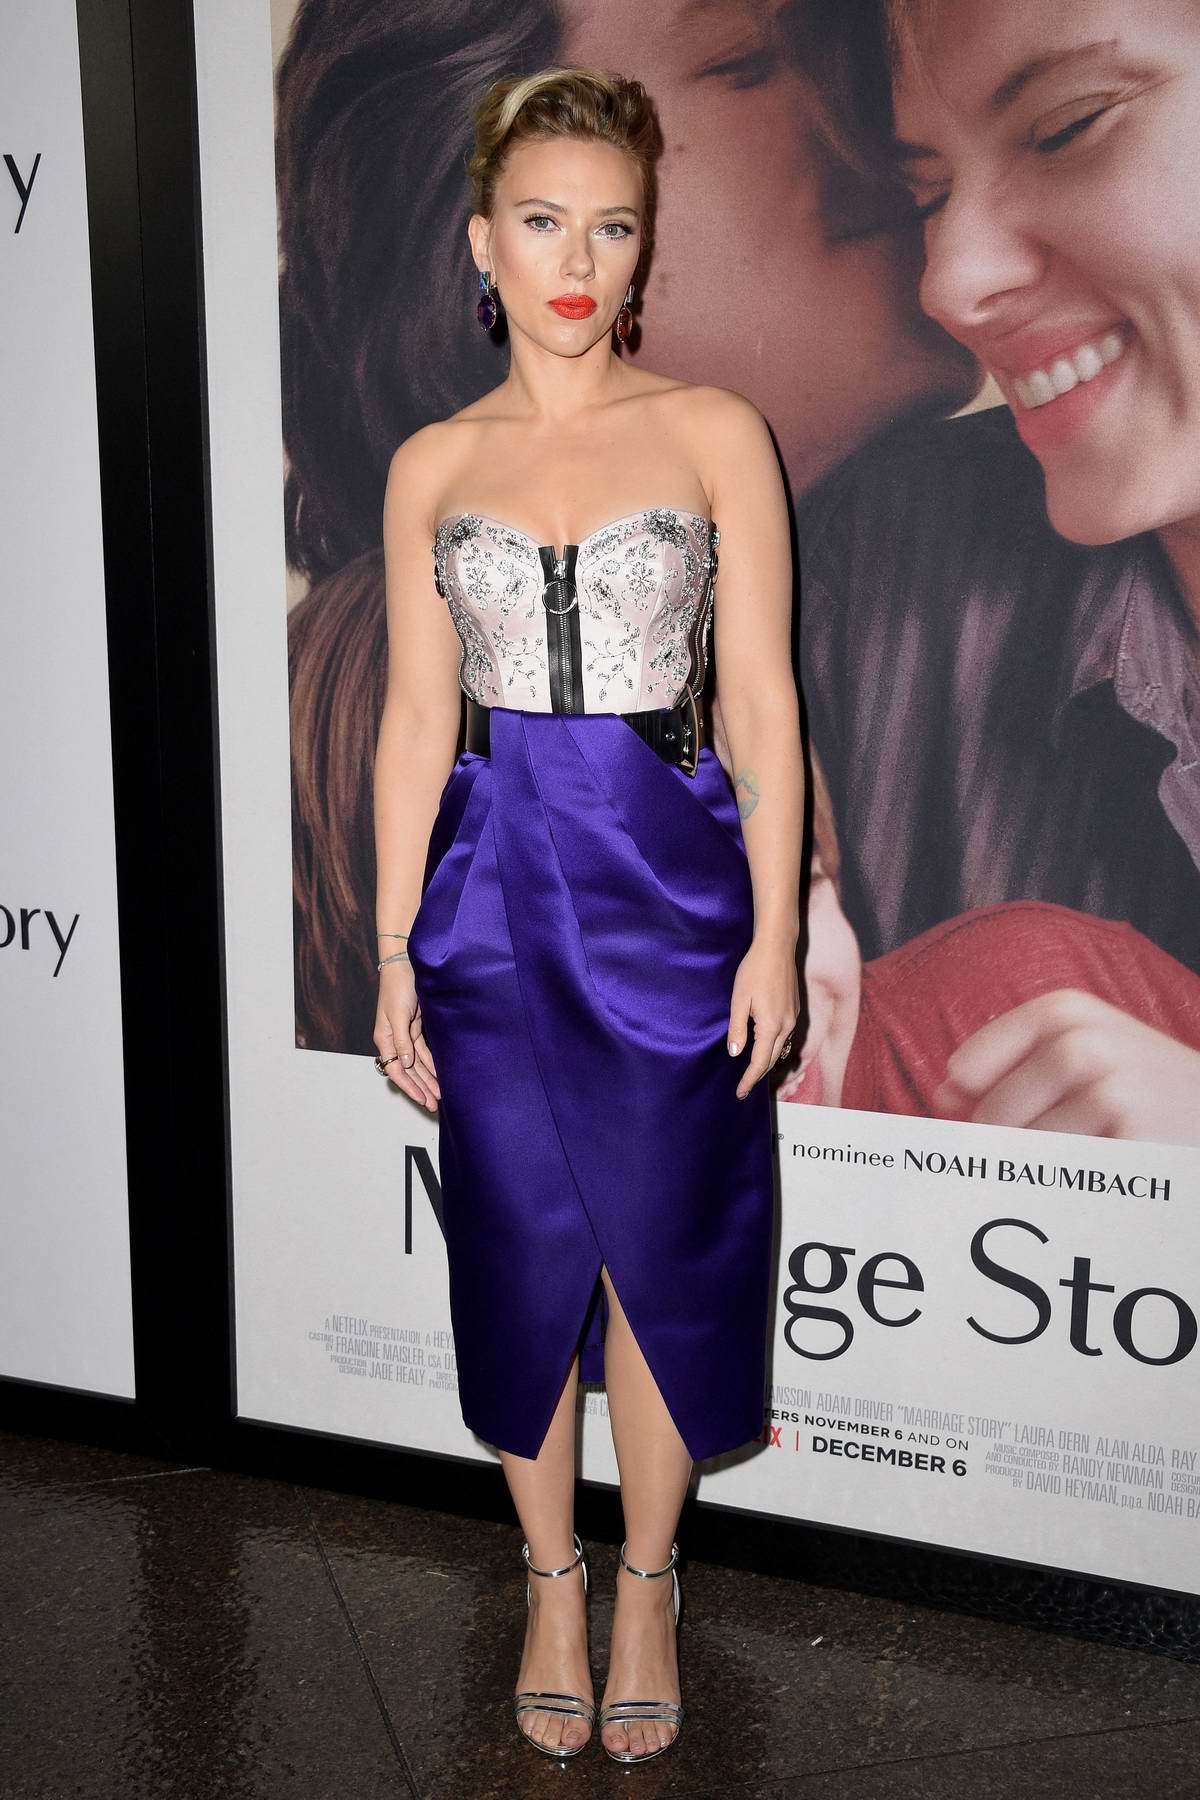 Scarlett Johansson attends the Premiere of Netflix's 'Marriage Story' at DGA Theater in Los Angeles